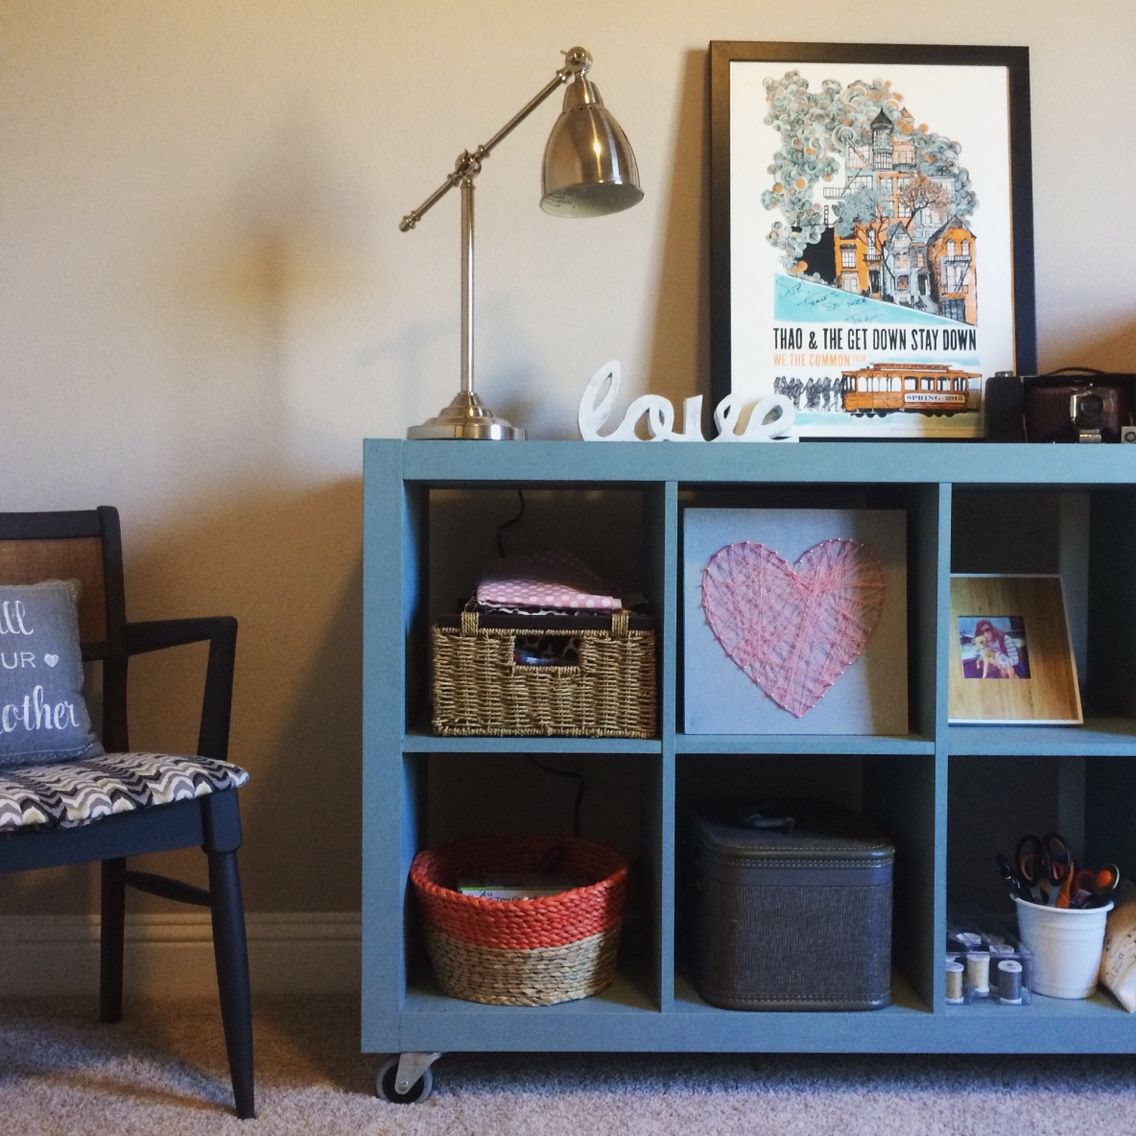 Expedit Ikea Bookshelf Painted Duck Egg Blue With Annie